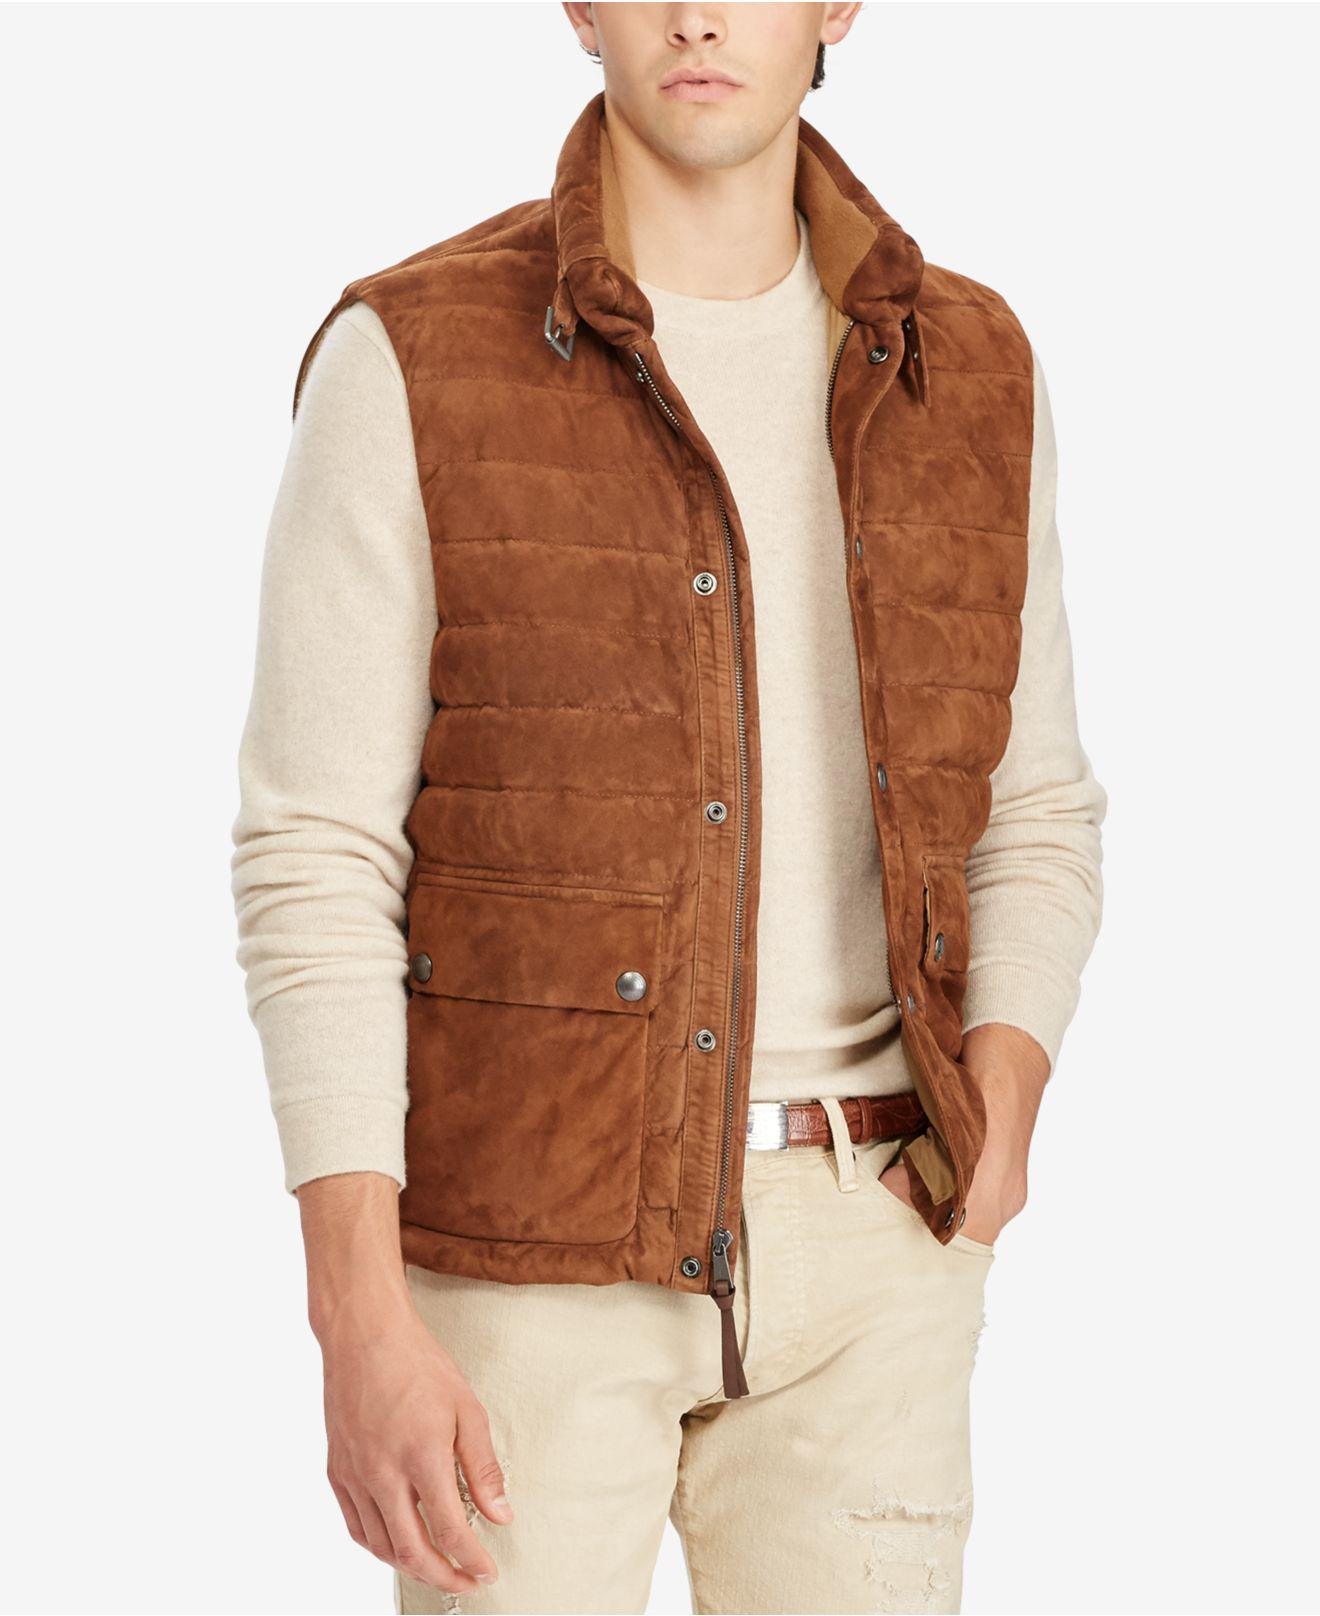 $185 NWT Mens Polo Ralph Lauren Down Quilted Packable Full Zip Puffer Vest Brown